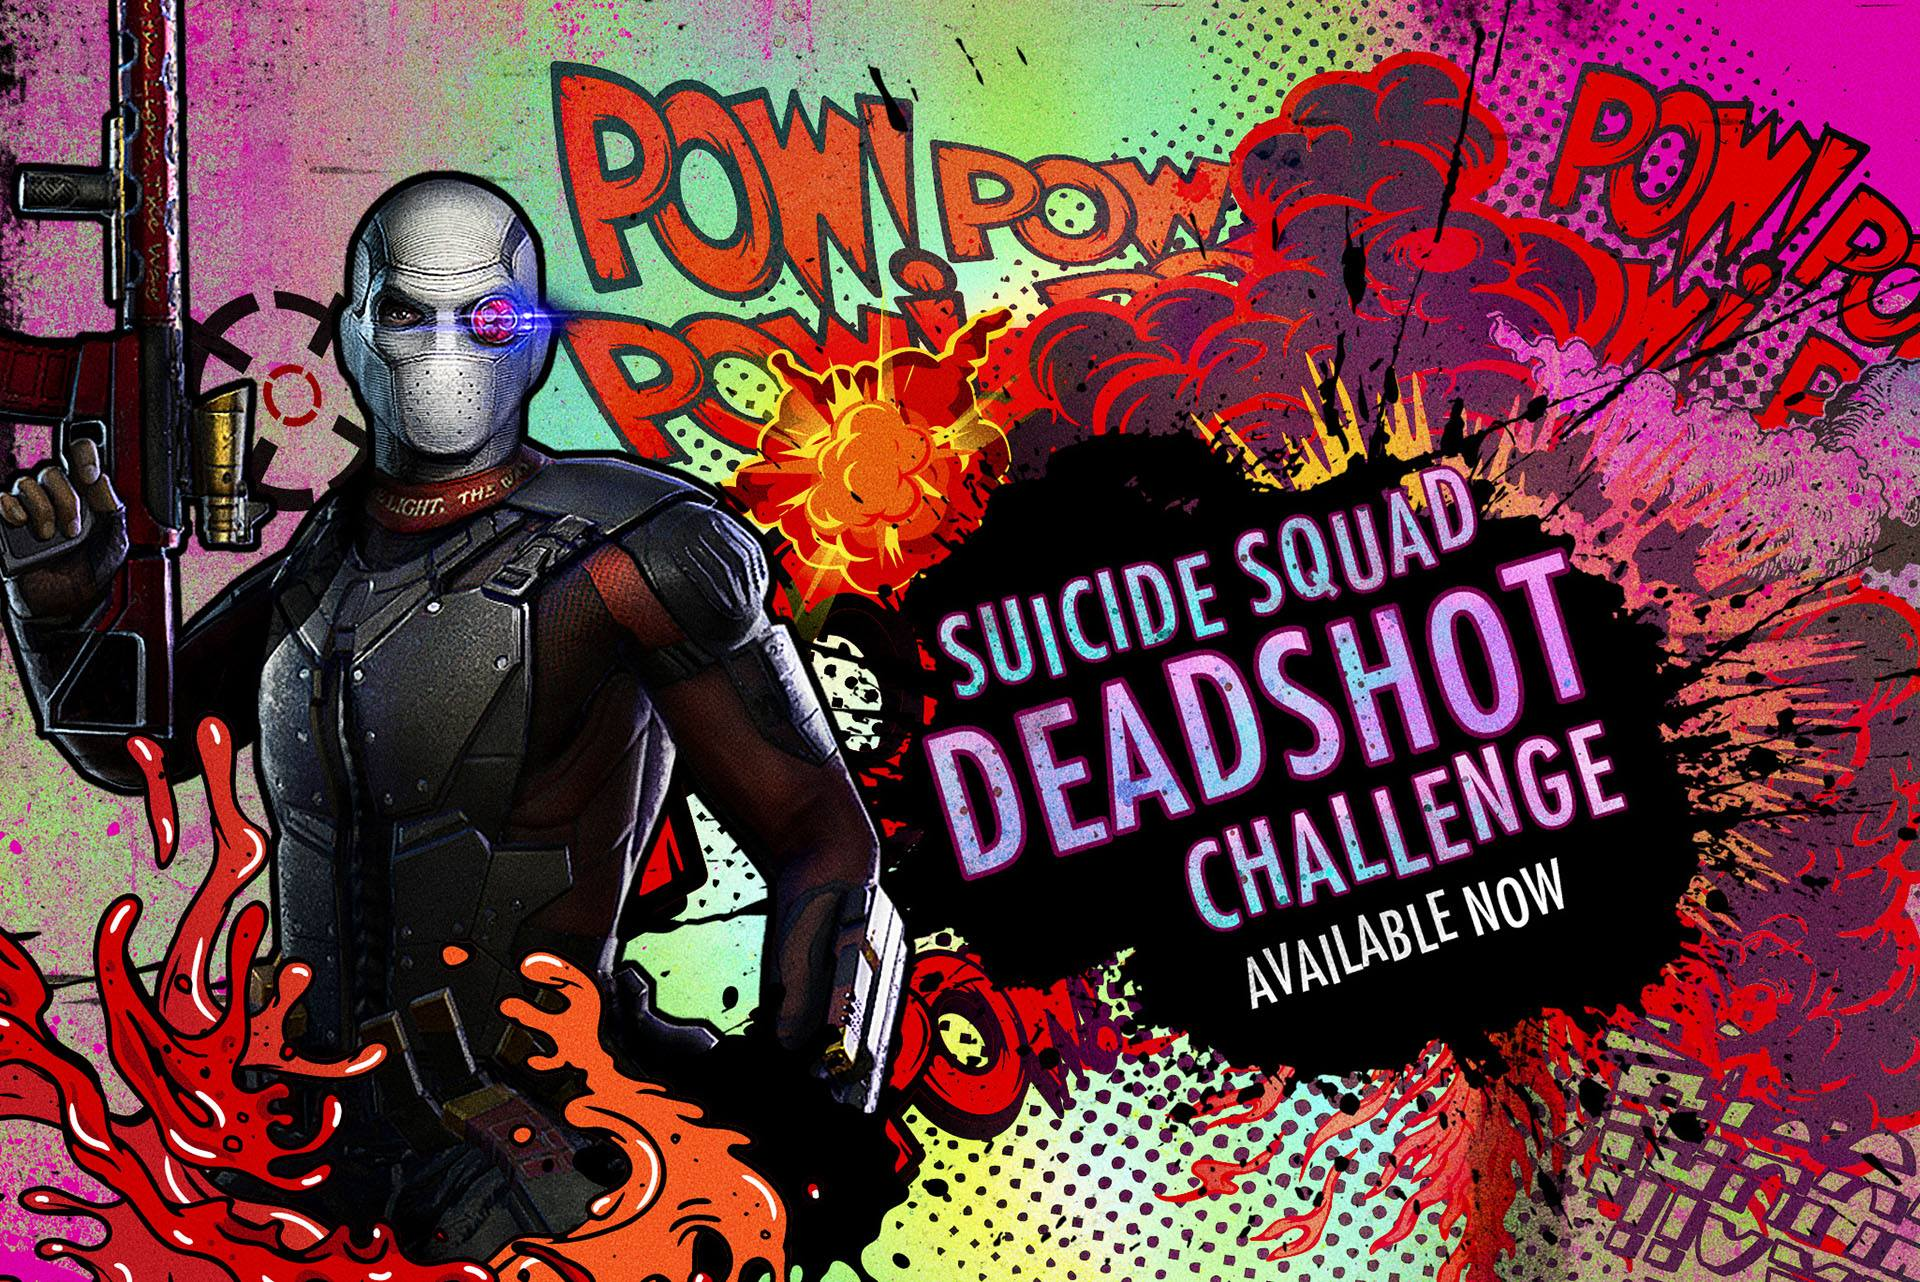 Suicide Squad Deadshot Challenge For Injustice Mobile ... Will Smith Deadshot